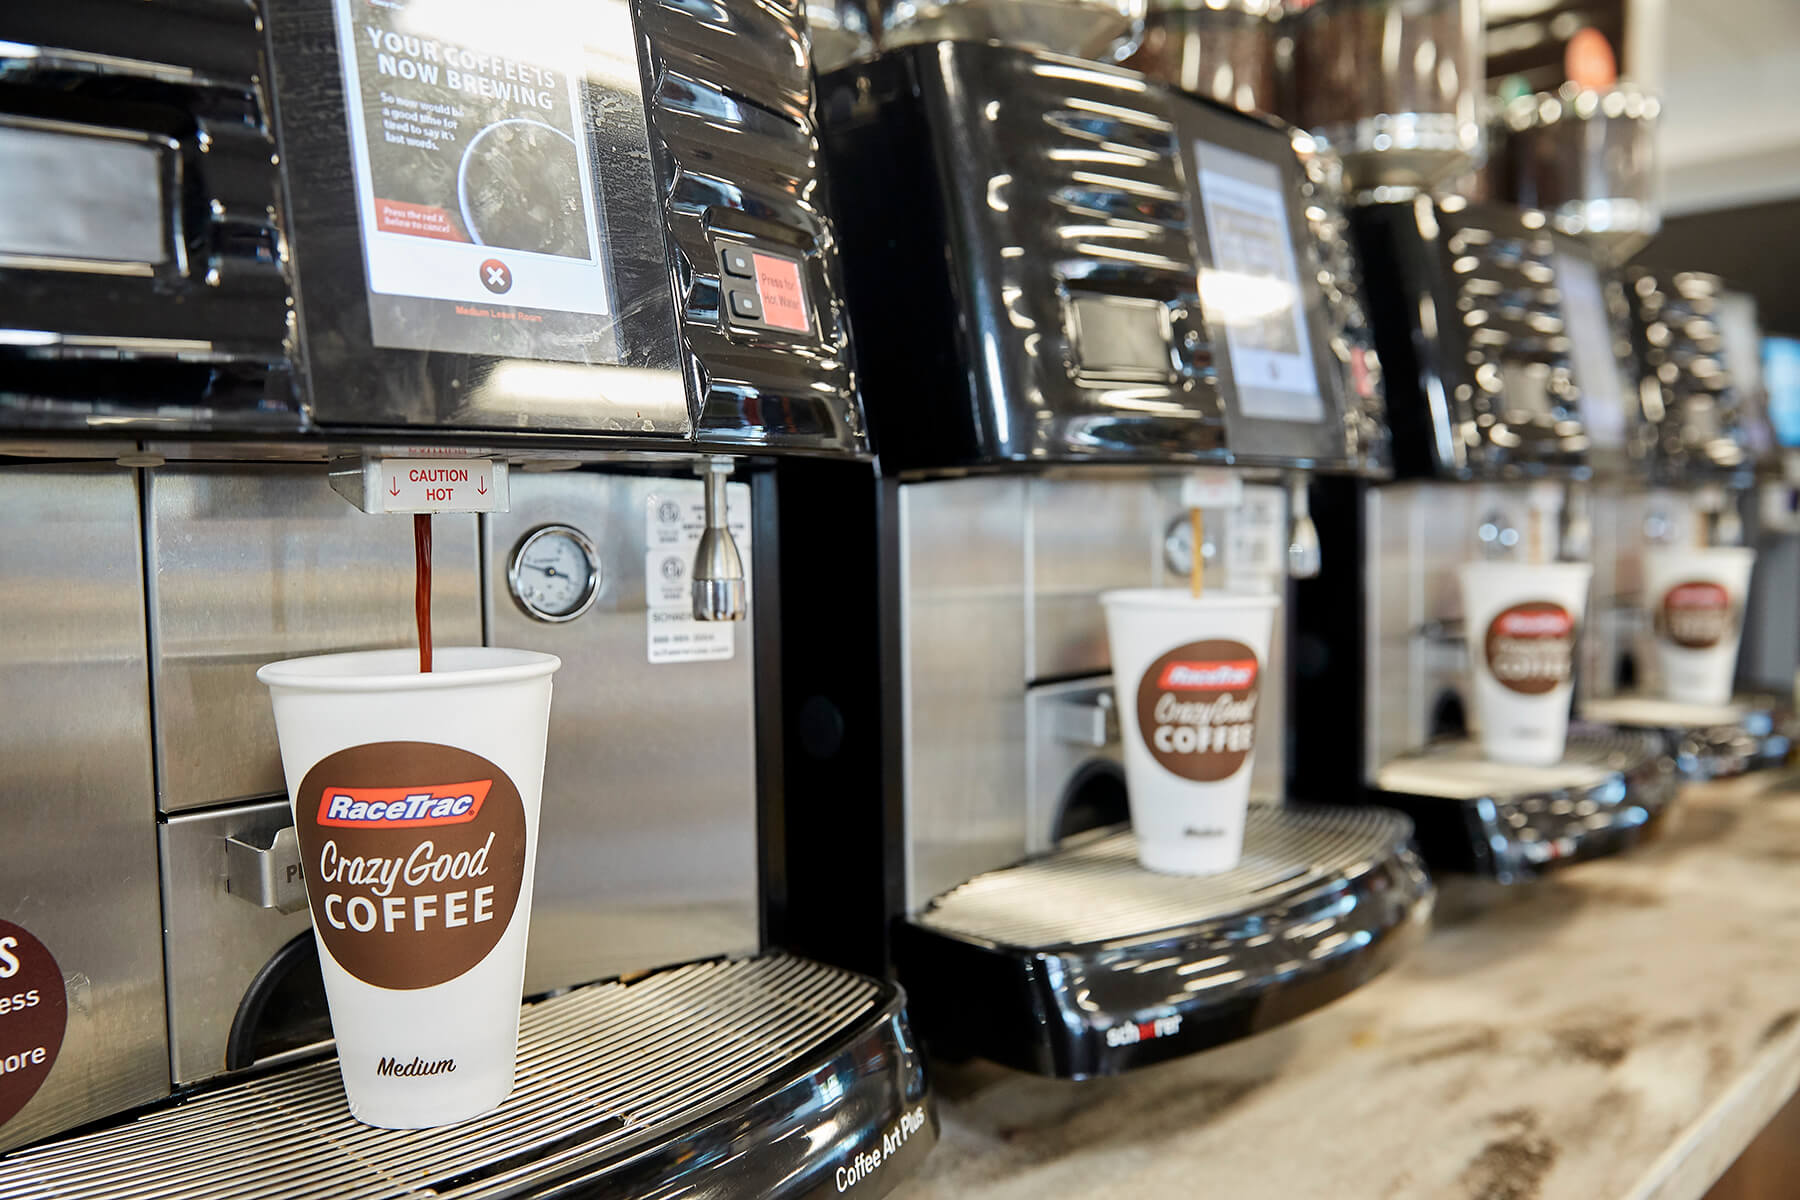 RaceTrac 5,500-square-foot store, interior Crazy Good Coffee bar